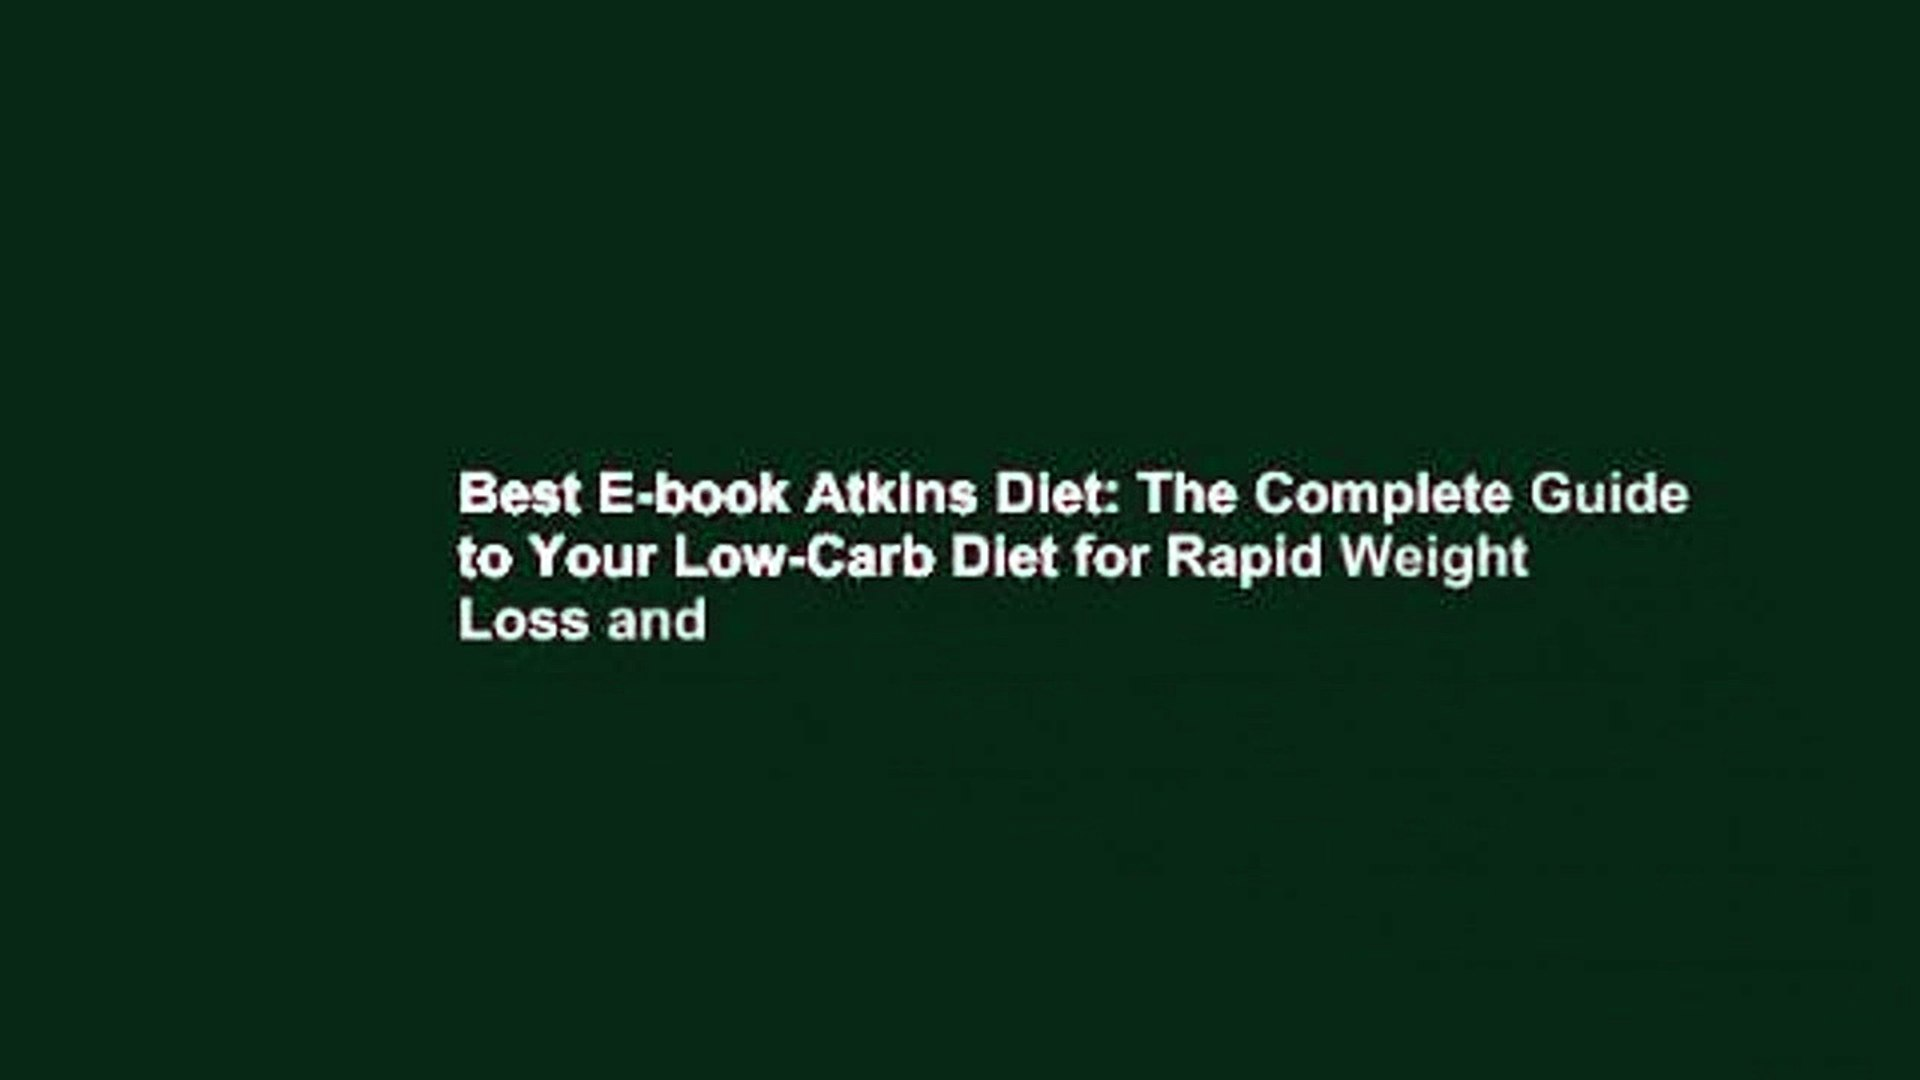 Best E Book Atkins Diet The Complete Guide To Your Low Carb Diet For Rapid Weight Loss And Video Dailymotion